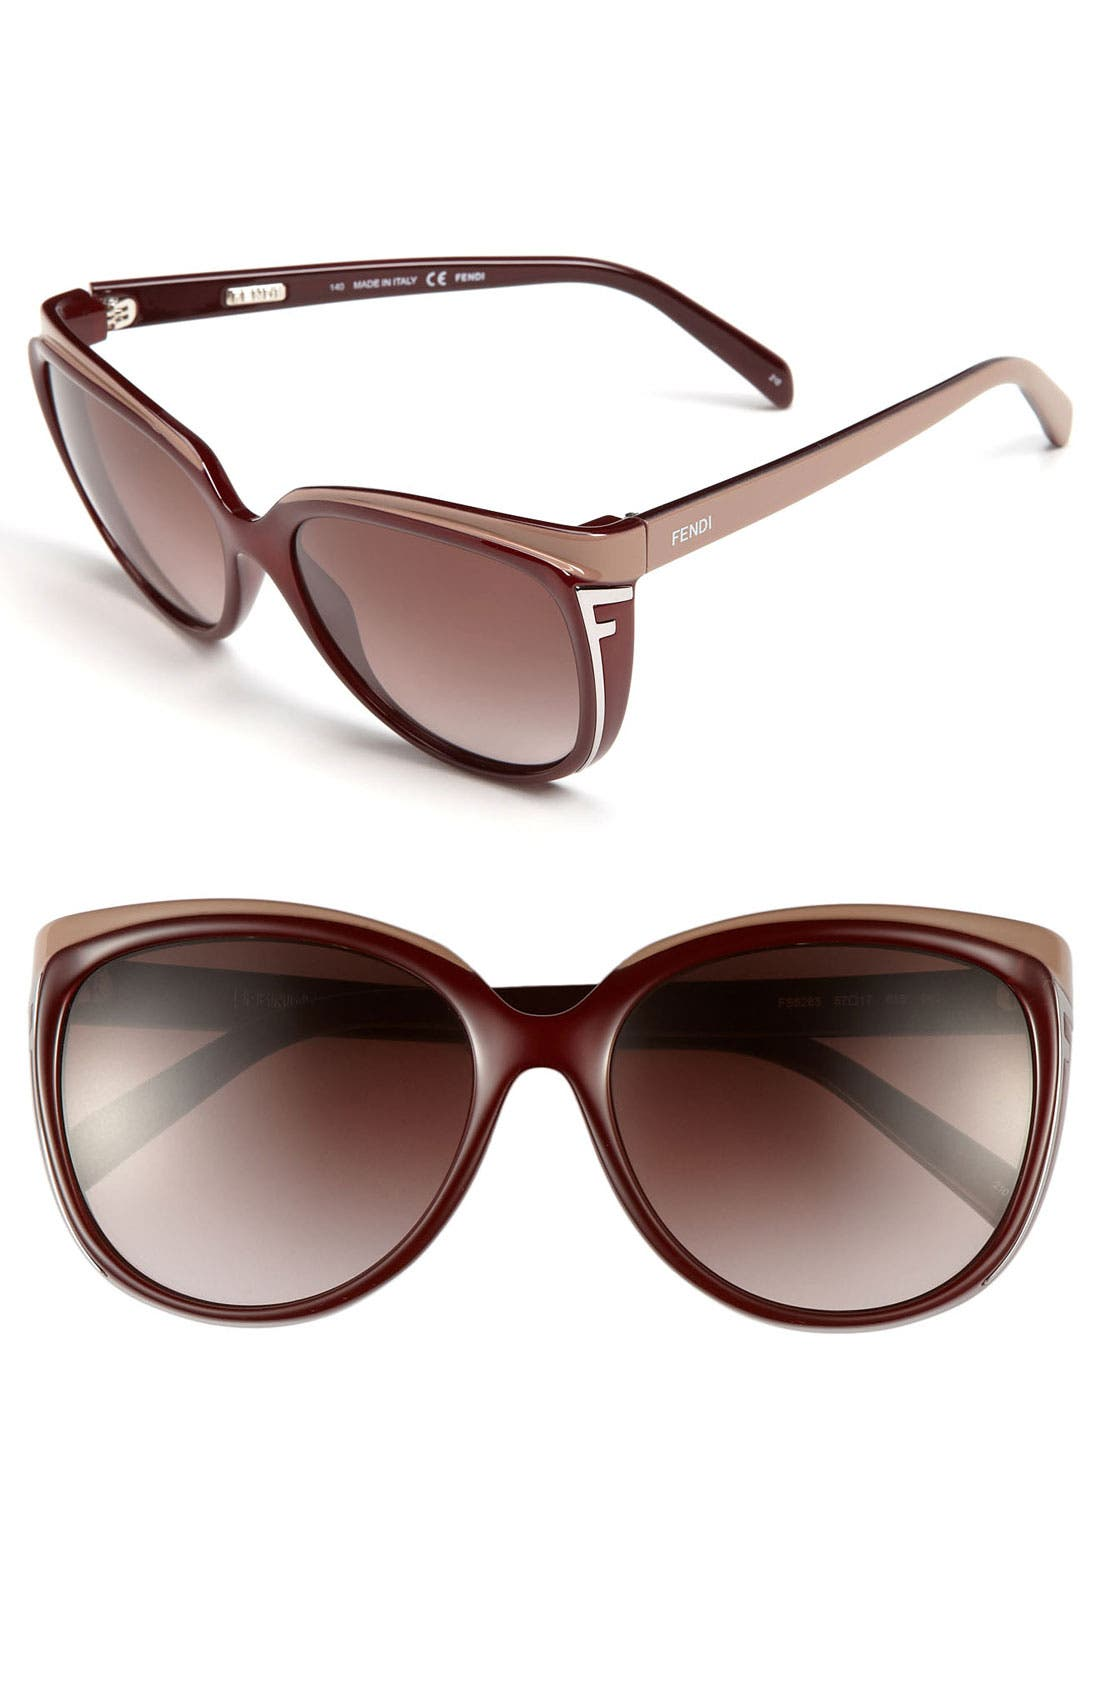 Alternate Image 1 Selected - Fendi 57mm Oversized Sunglasses